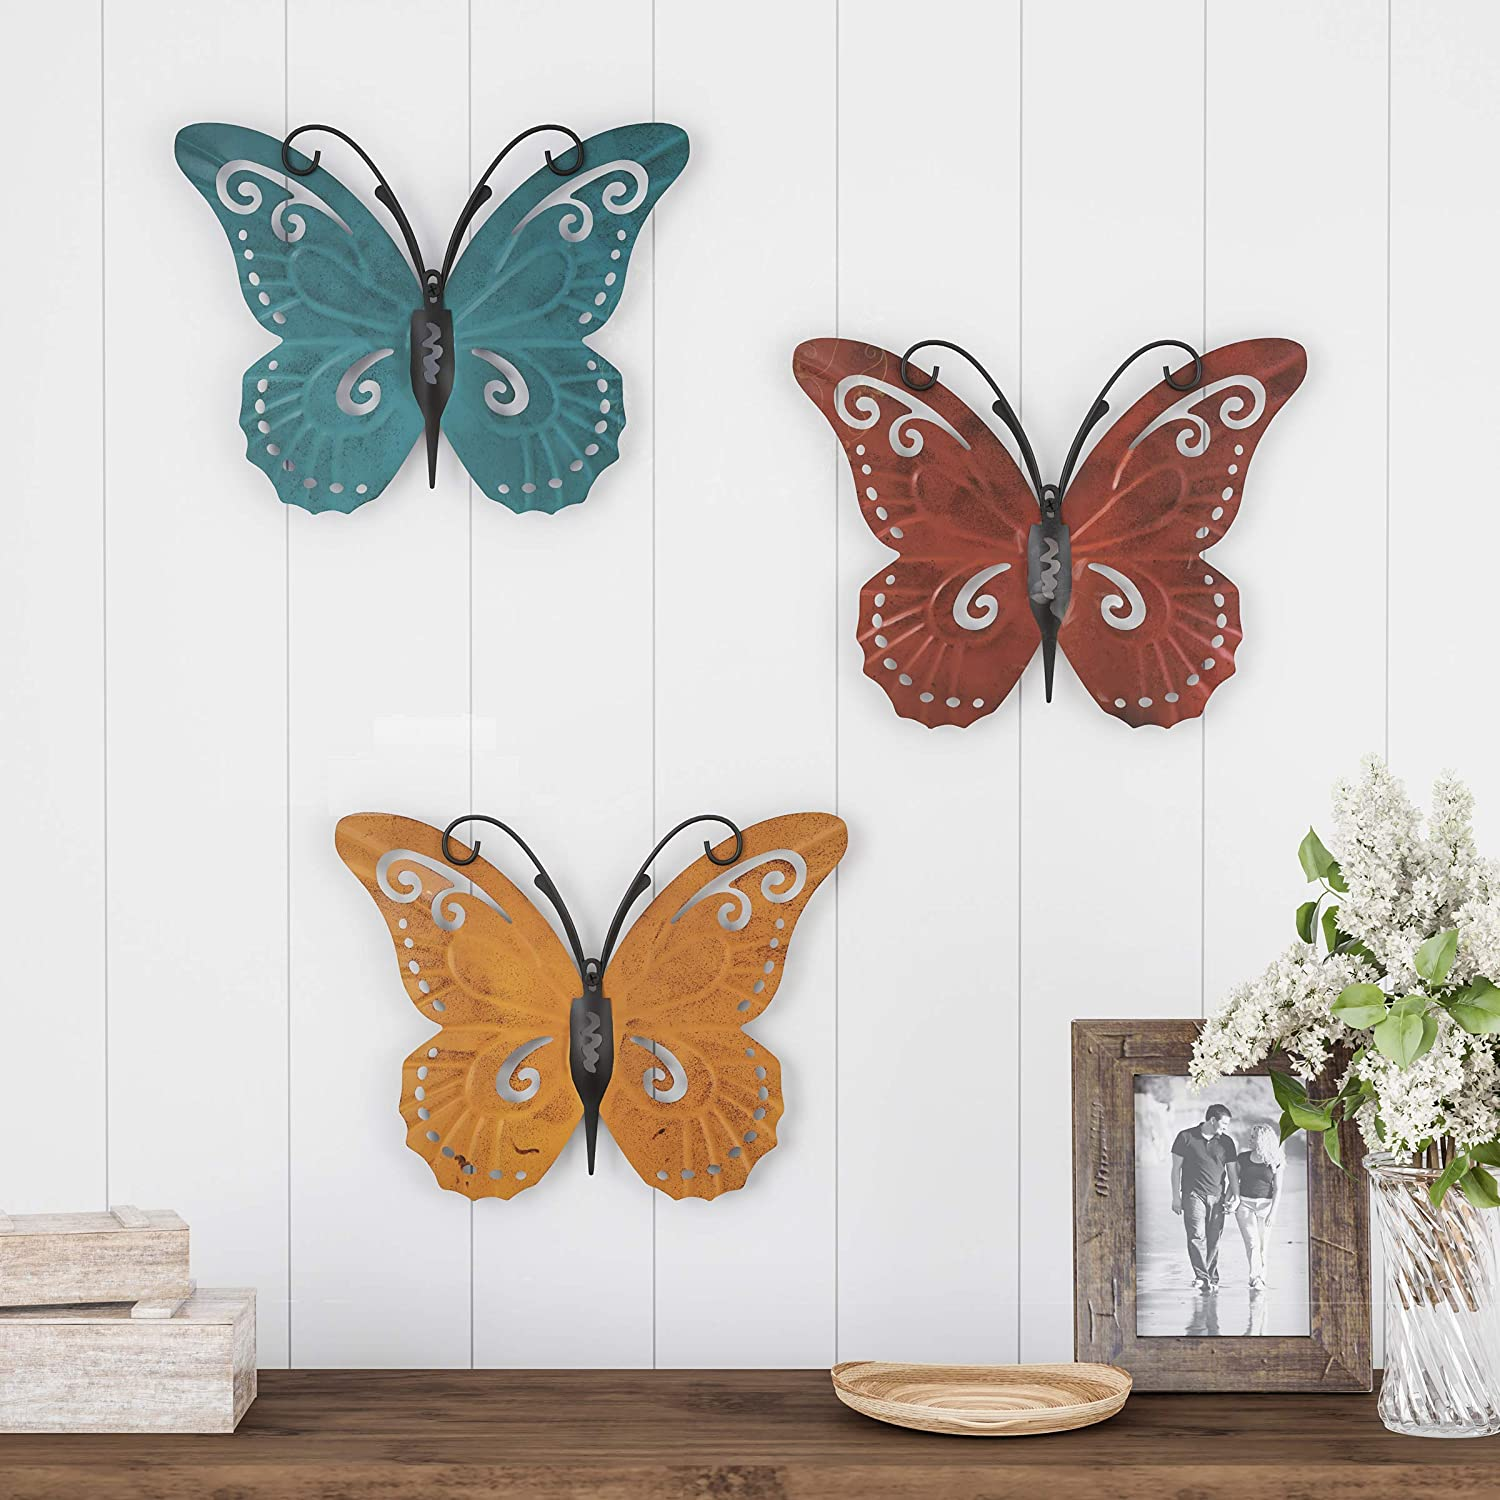 Lavish Home Metal Wall Art 3 Piece Set Hand Painted 3D Nature Butterflies for Modern Farmhouse Rustic Home or Office Decor, 3 Count